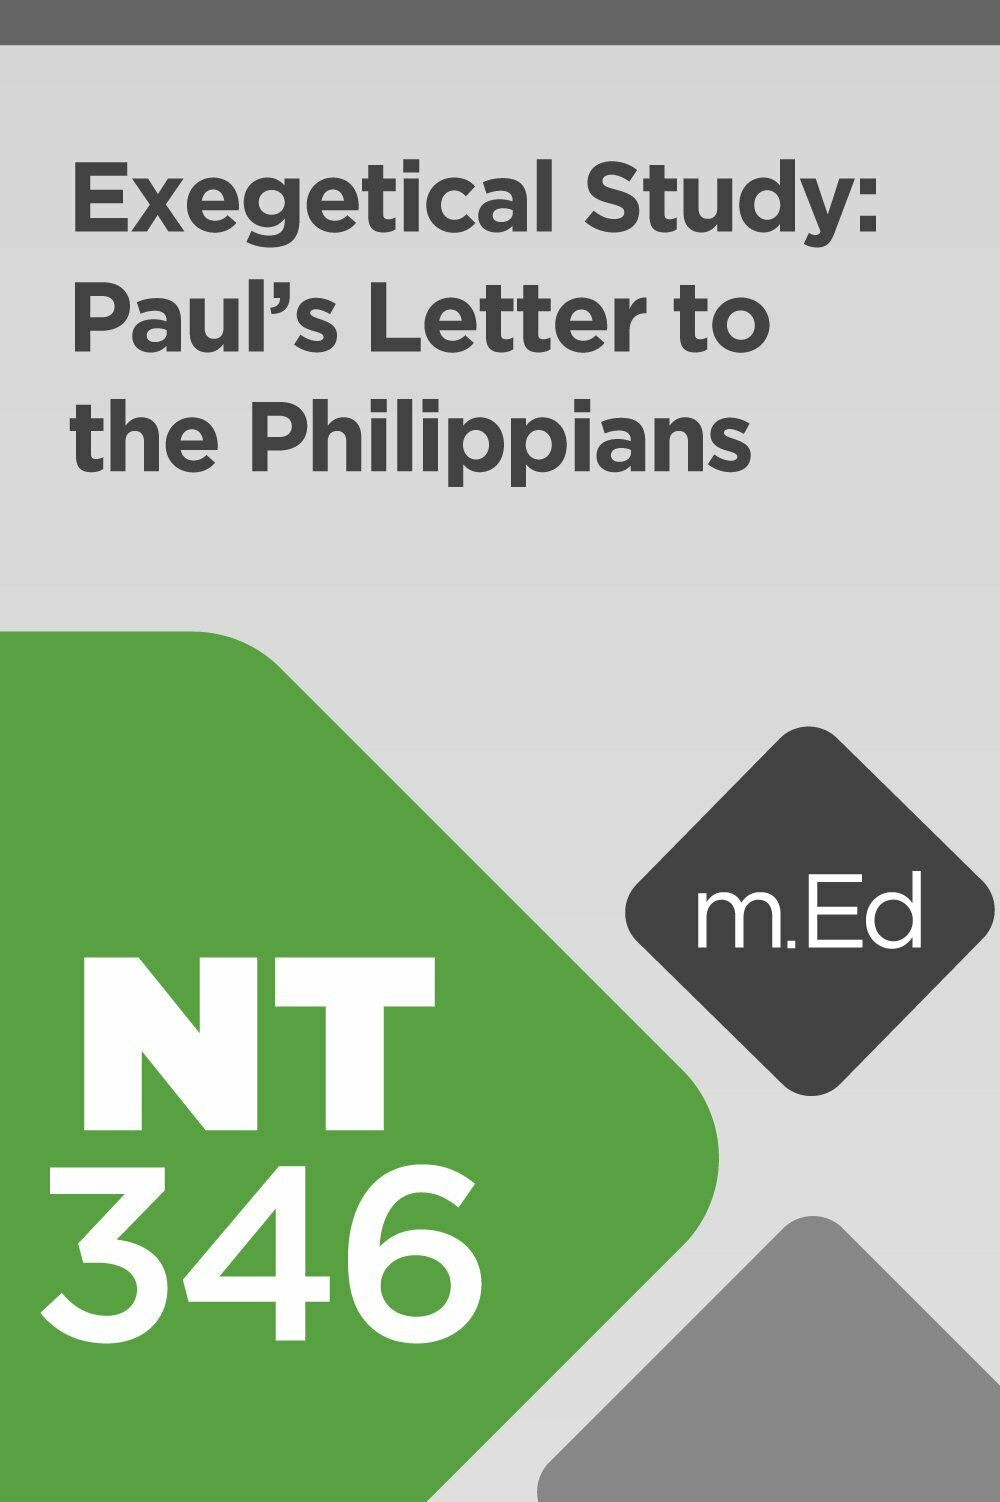 Mobile Ed: NT346 Exegetical Study: Paul's Letter to the Philippians (8 hour course)